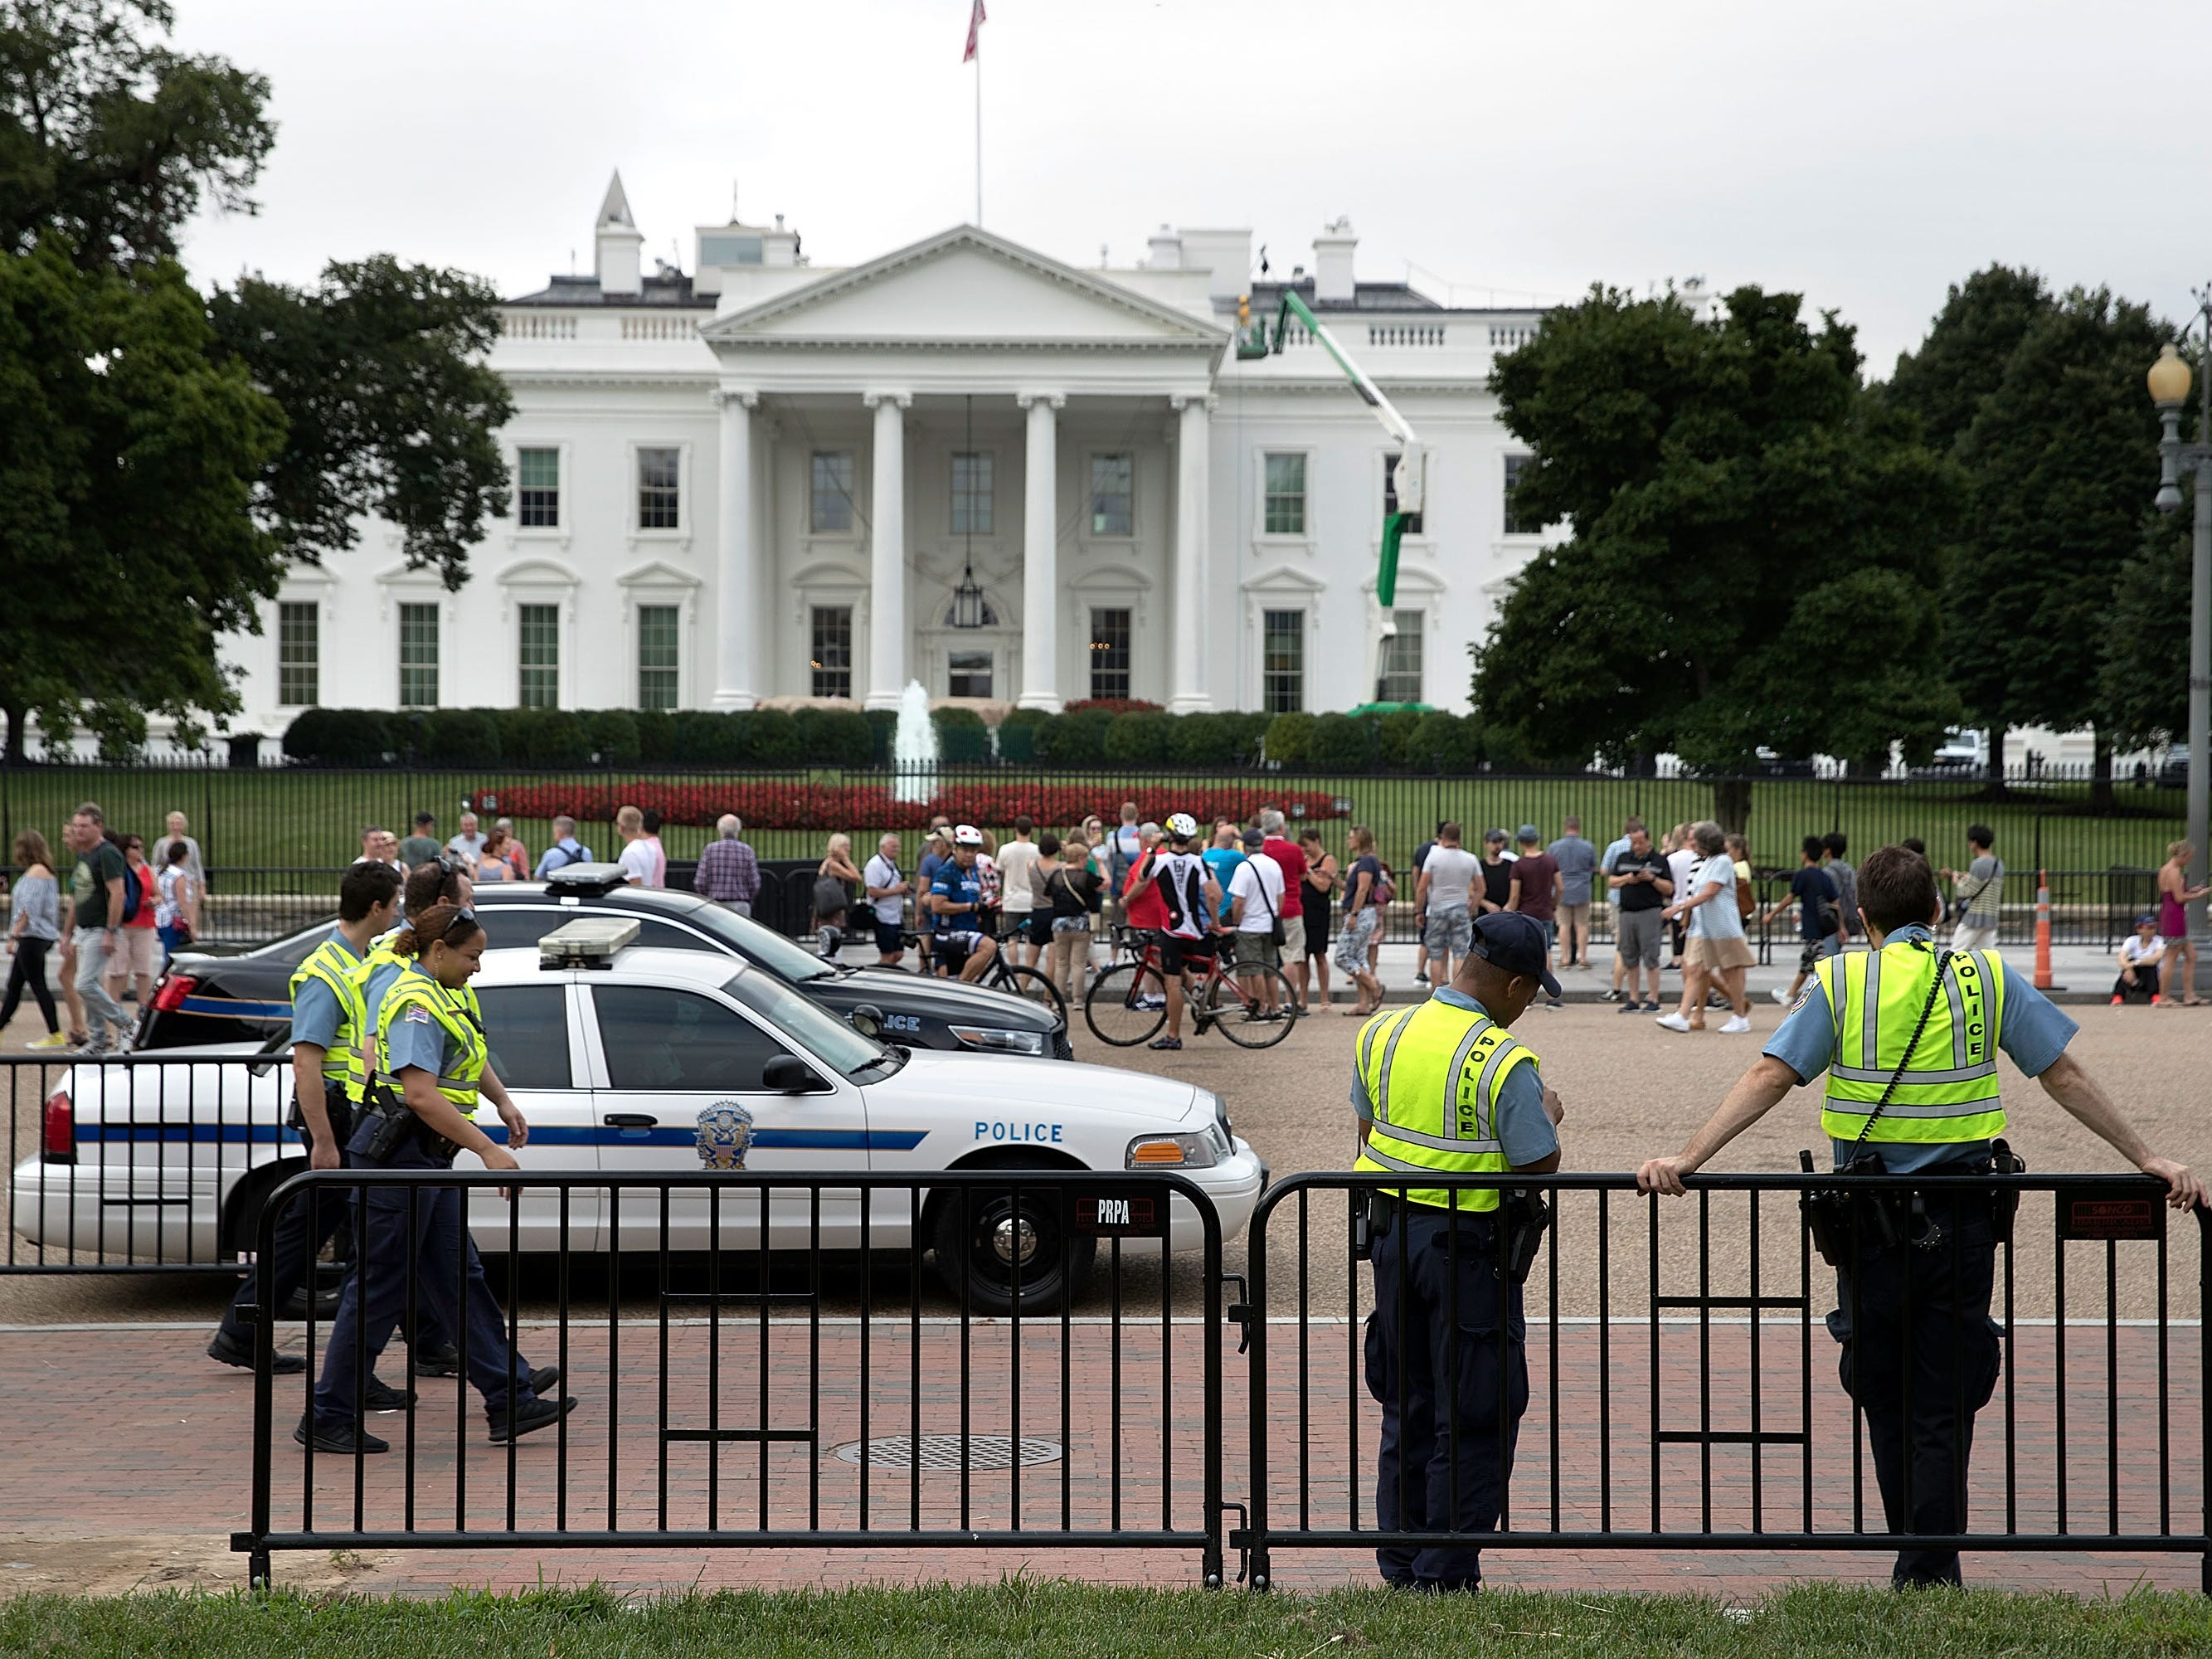 Police gather in front of the White House ahead of the planned white supremacists Unite the Right rally in Lafayette Park Aug. 12, 2018 in Washington, DC.